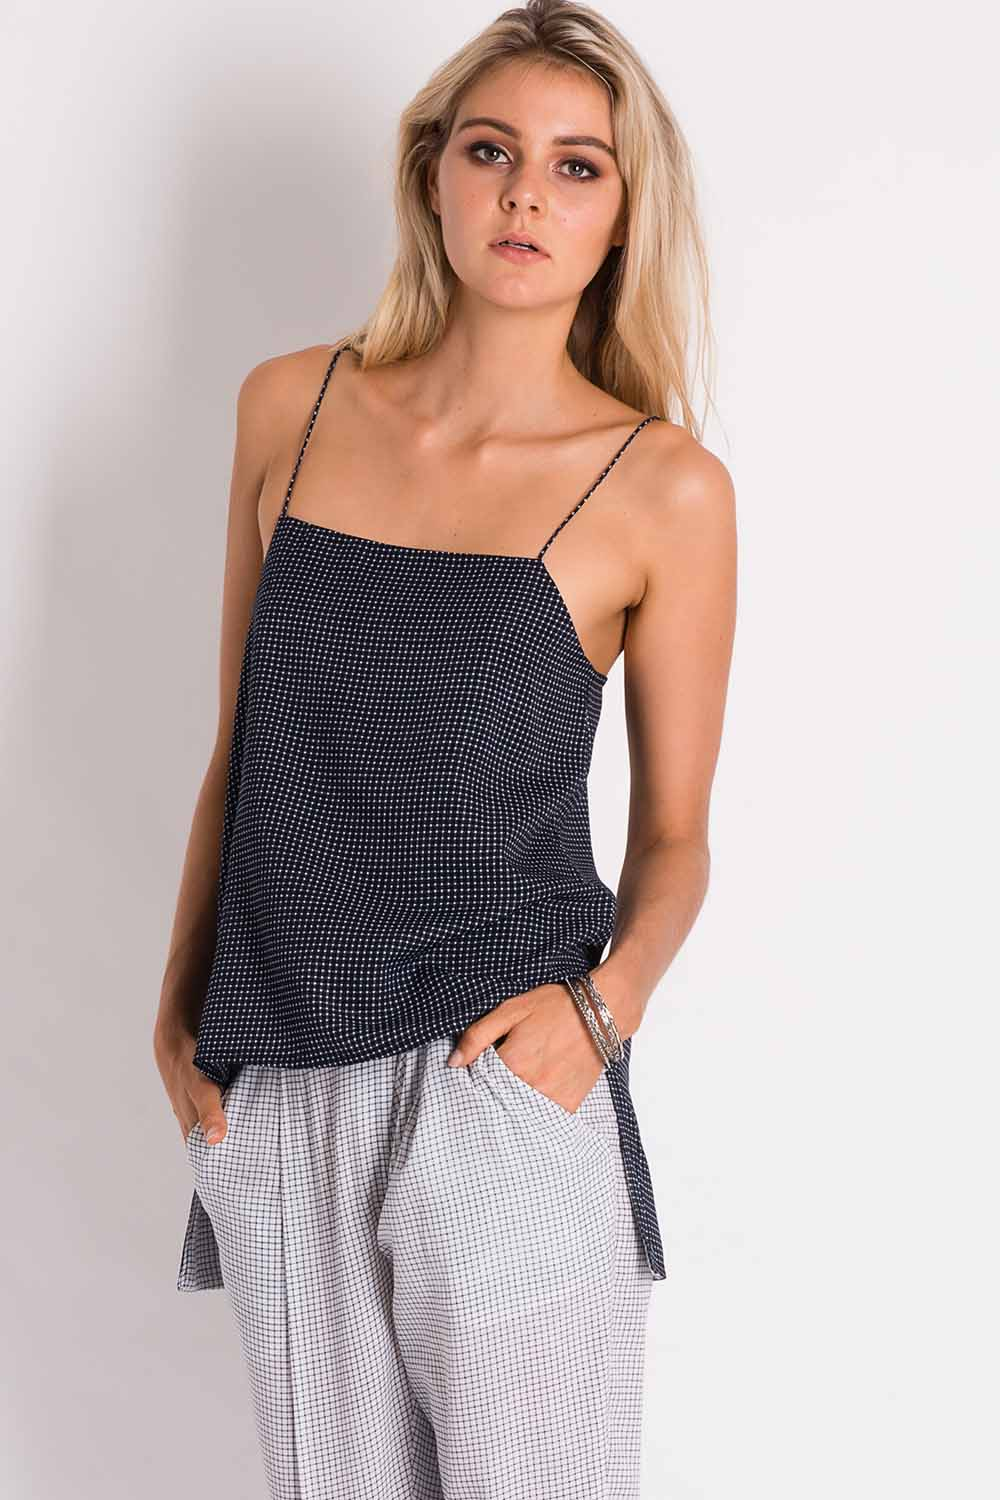 Aesteroid Grid Cami - Navy/white